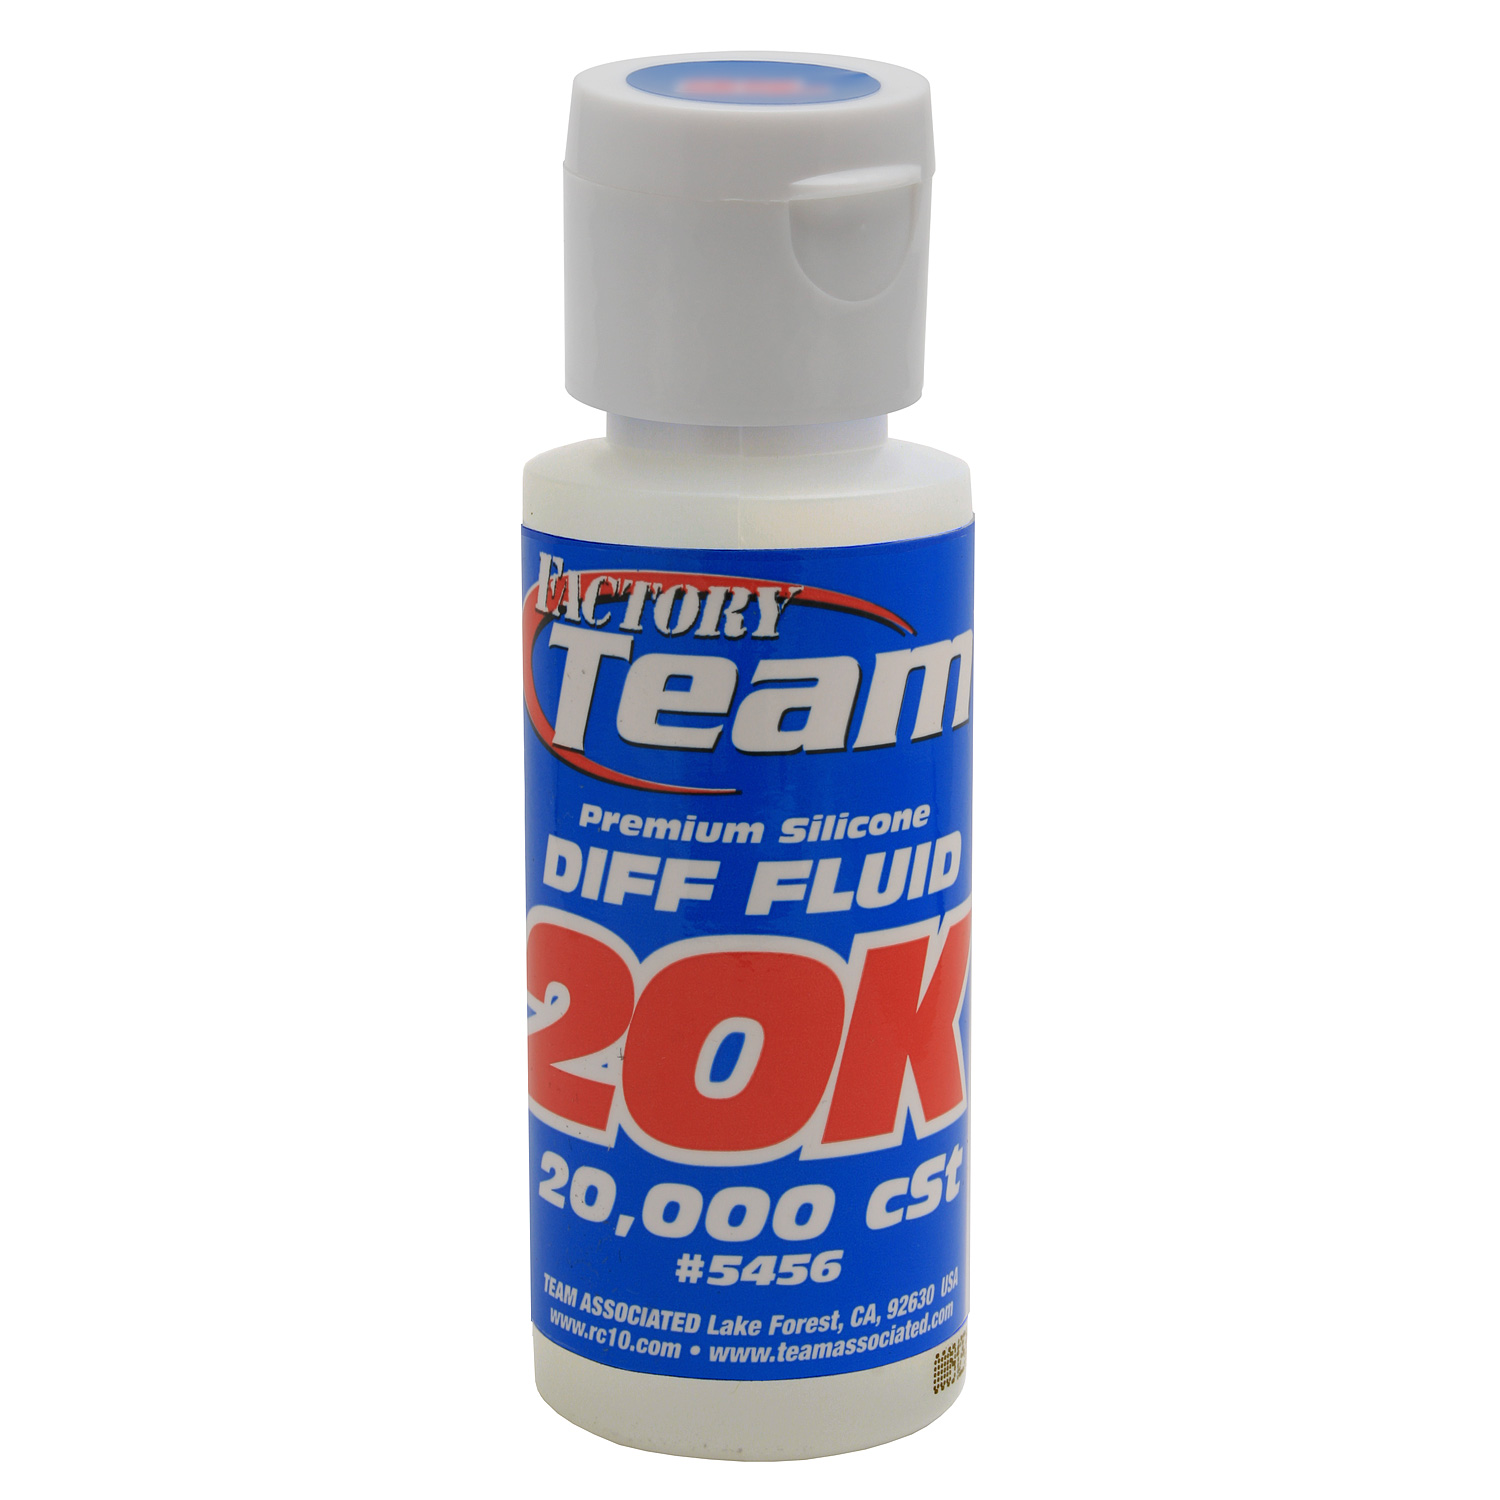 ASC5456 FT Silicone Diff Fluid, 20,000 CST